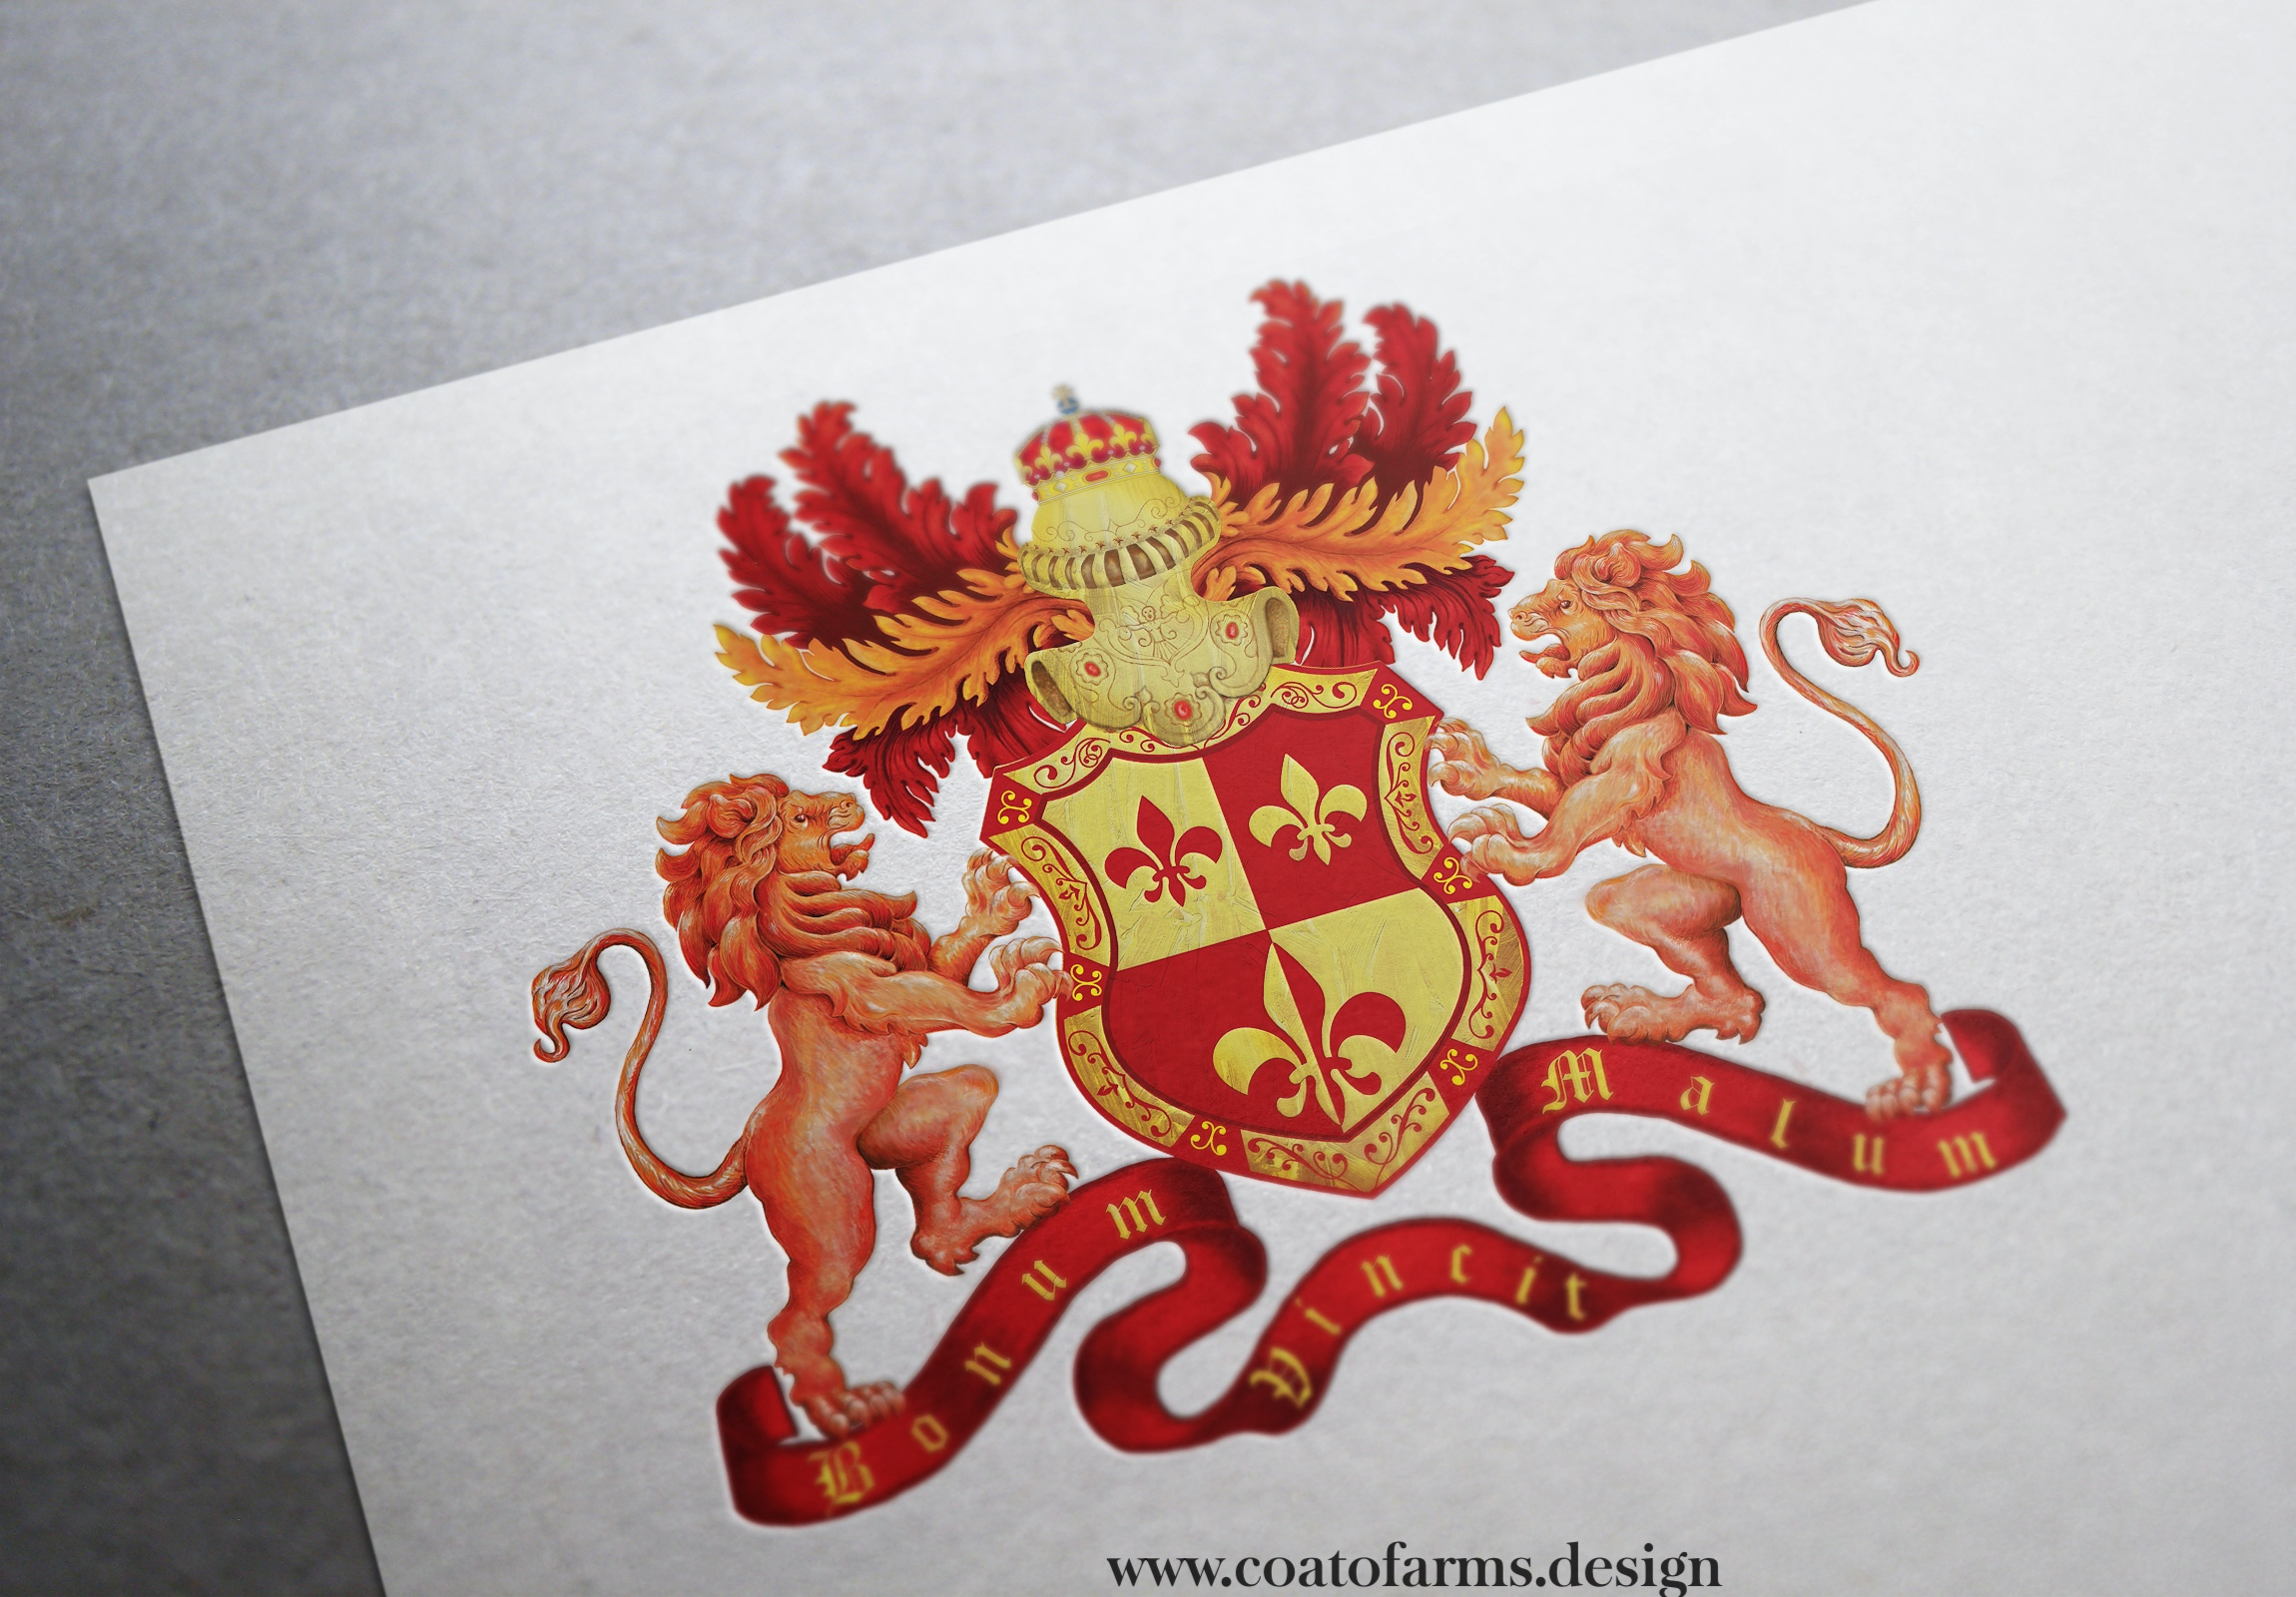 Coat of arms (emblem) I designed for a medical doctor from Germany